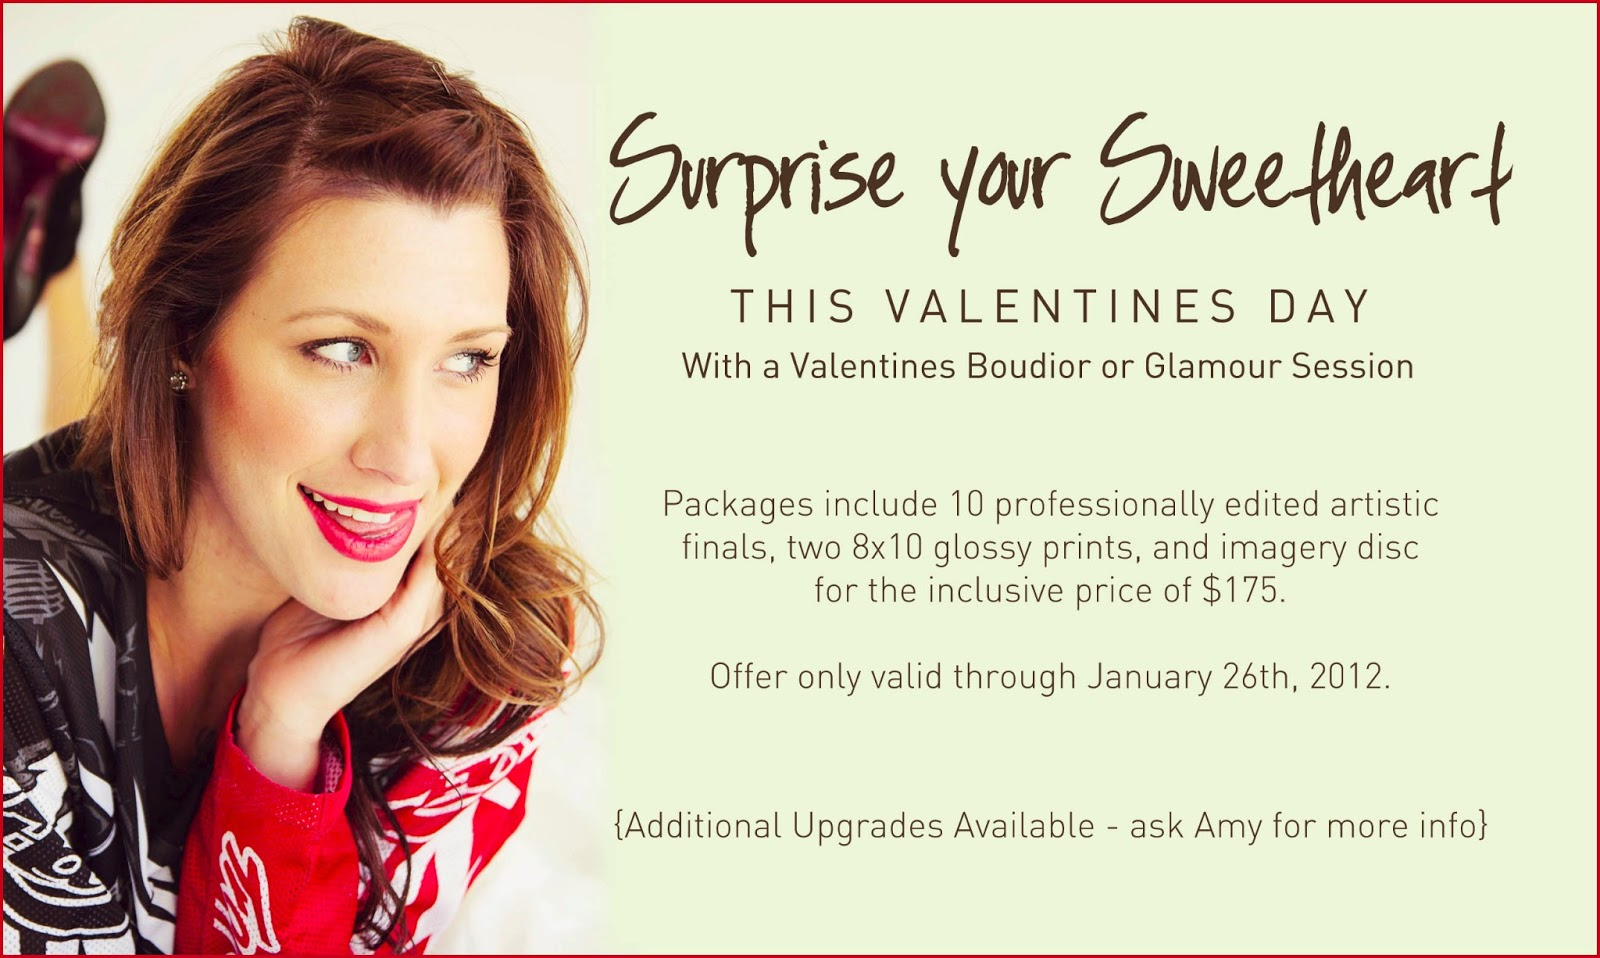 Valentines Day Boudoir and Glamour Sessions - Arlington TX ...